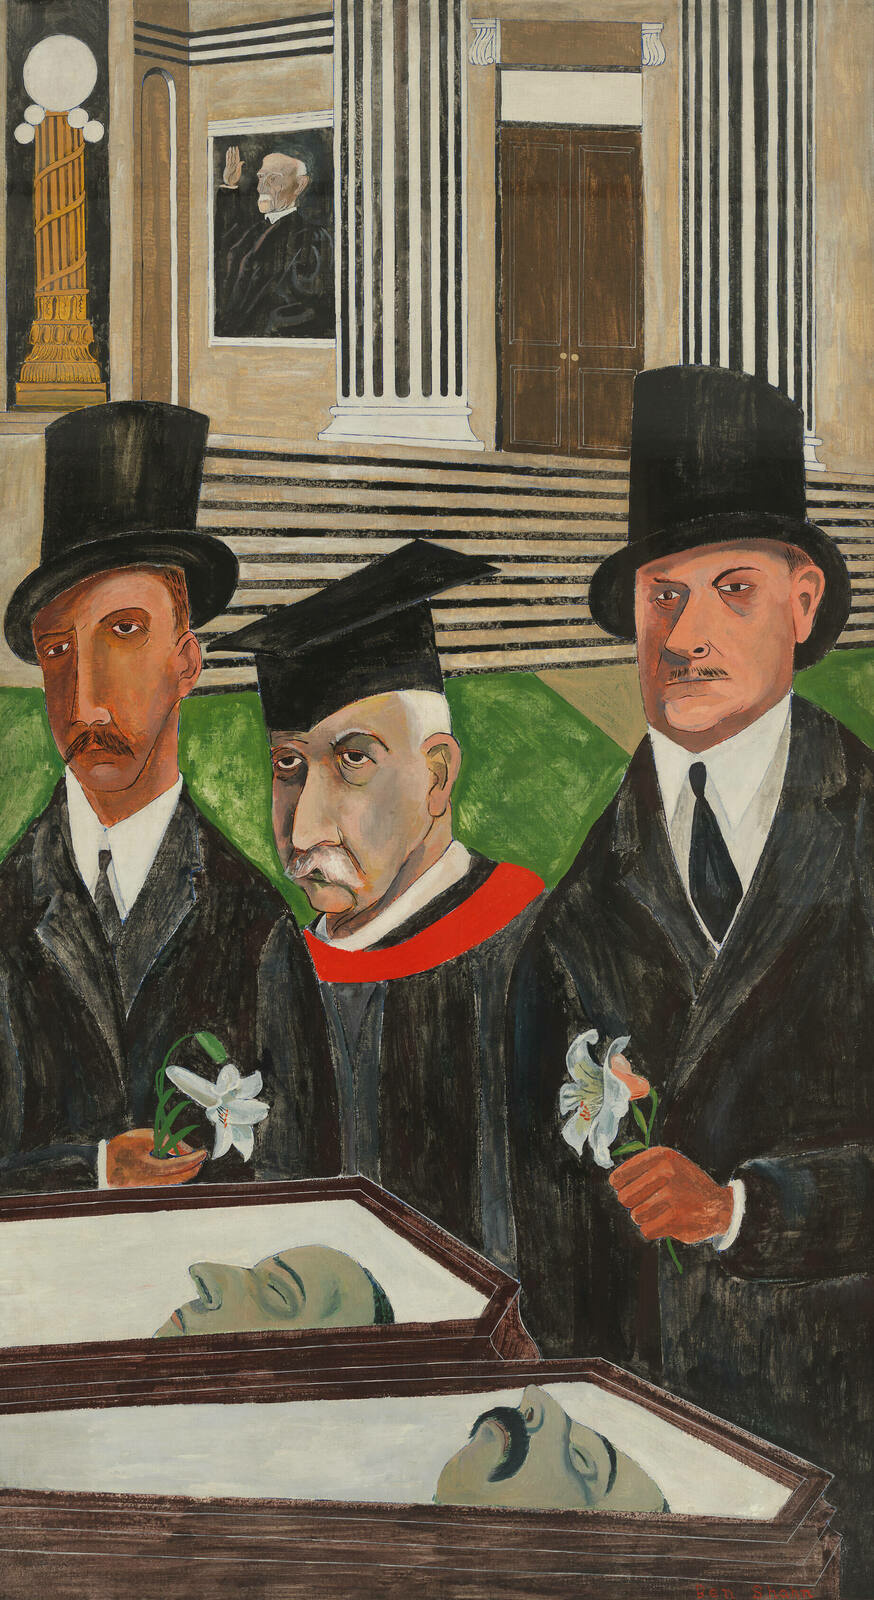 Painted with angular lines and emotionless faces, three suited men gaze over two open caskets, with a courthouse in the background